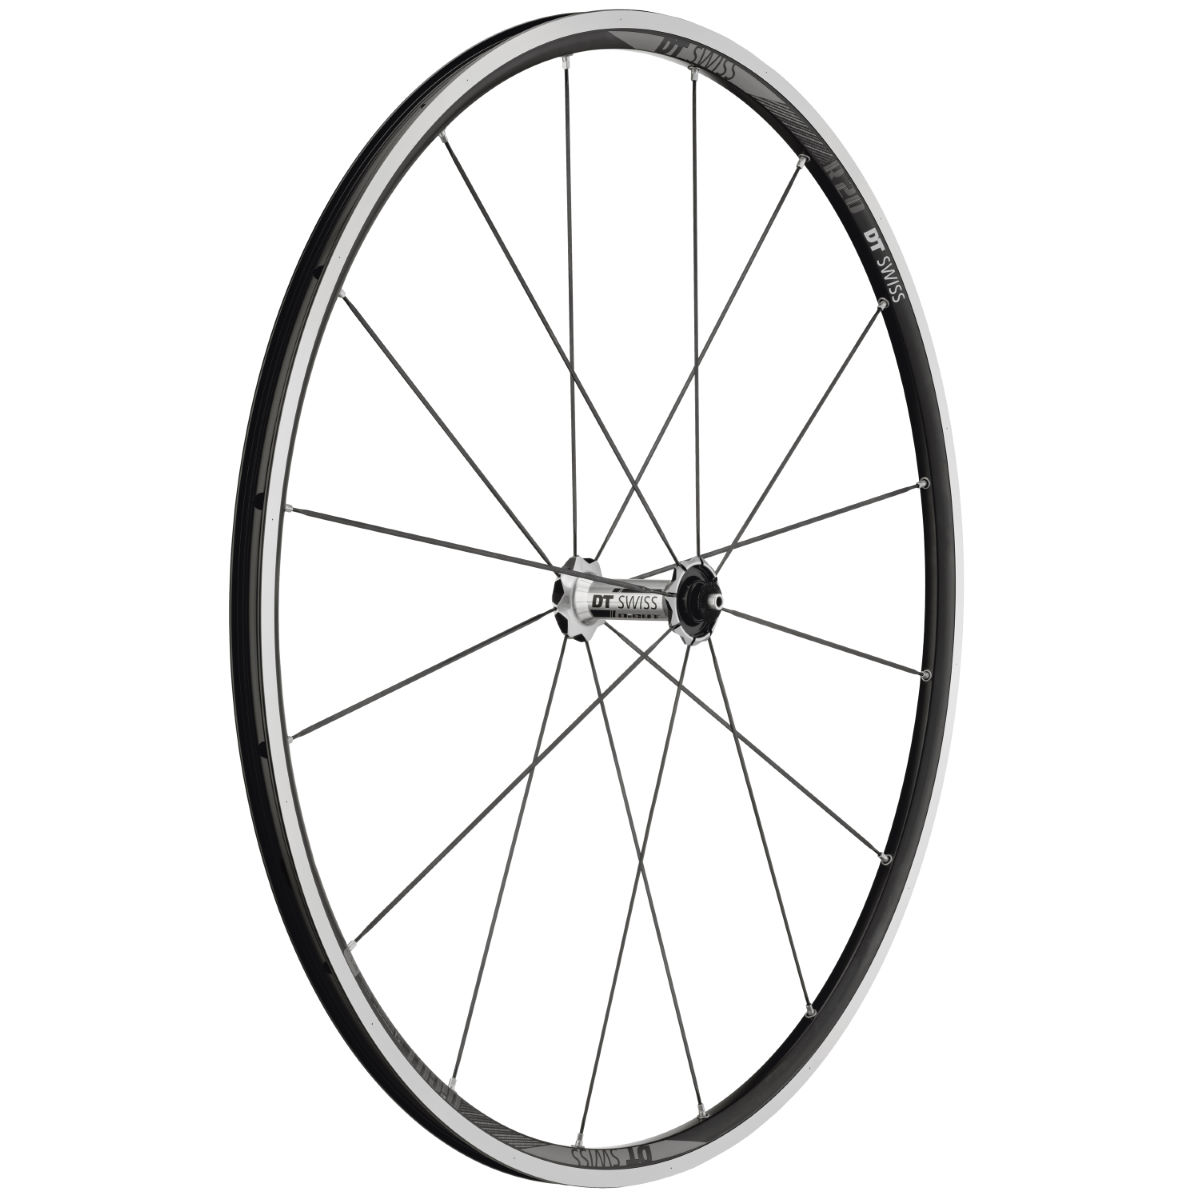 Roue avant DT Swiss R20 Dicut (alliage) - 700c - Clincher Noir/Gris Roues performance